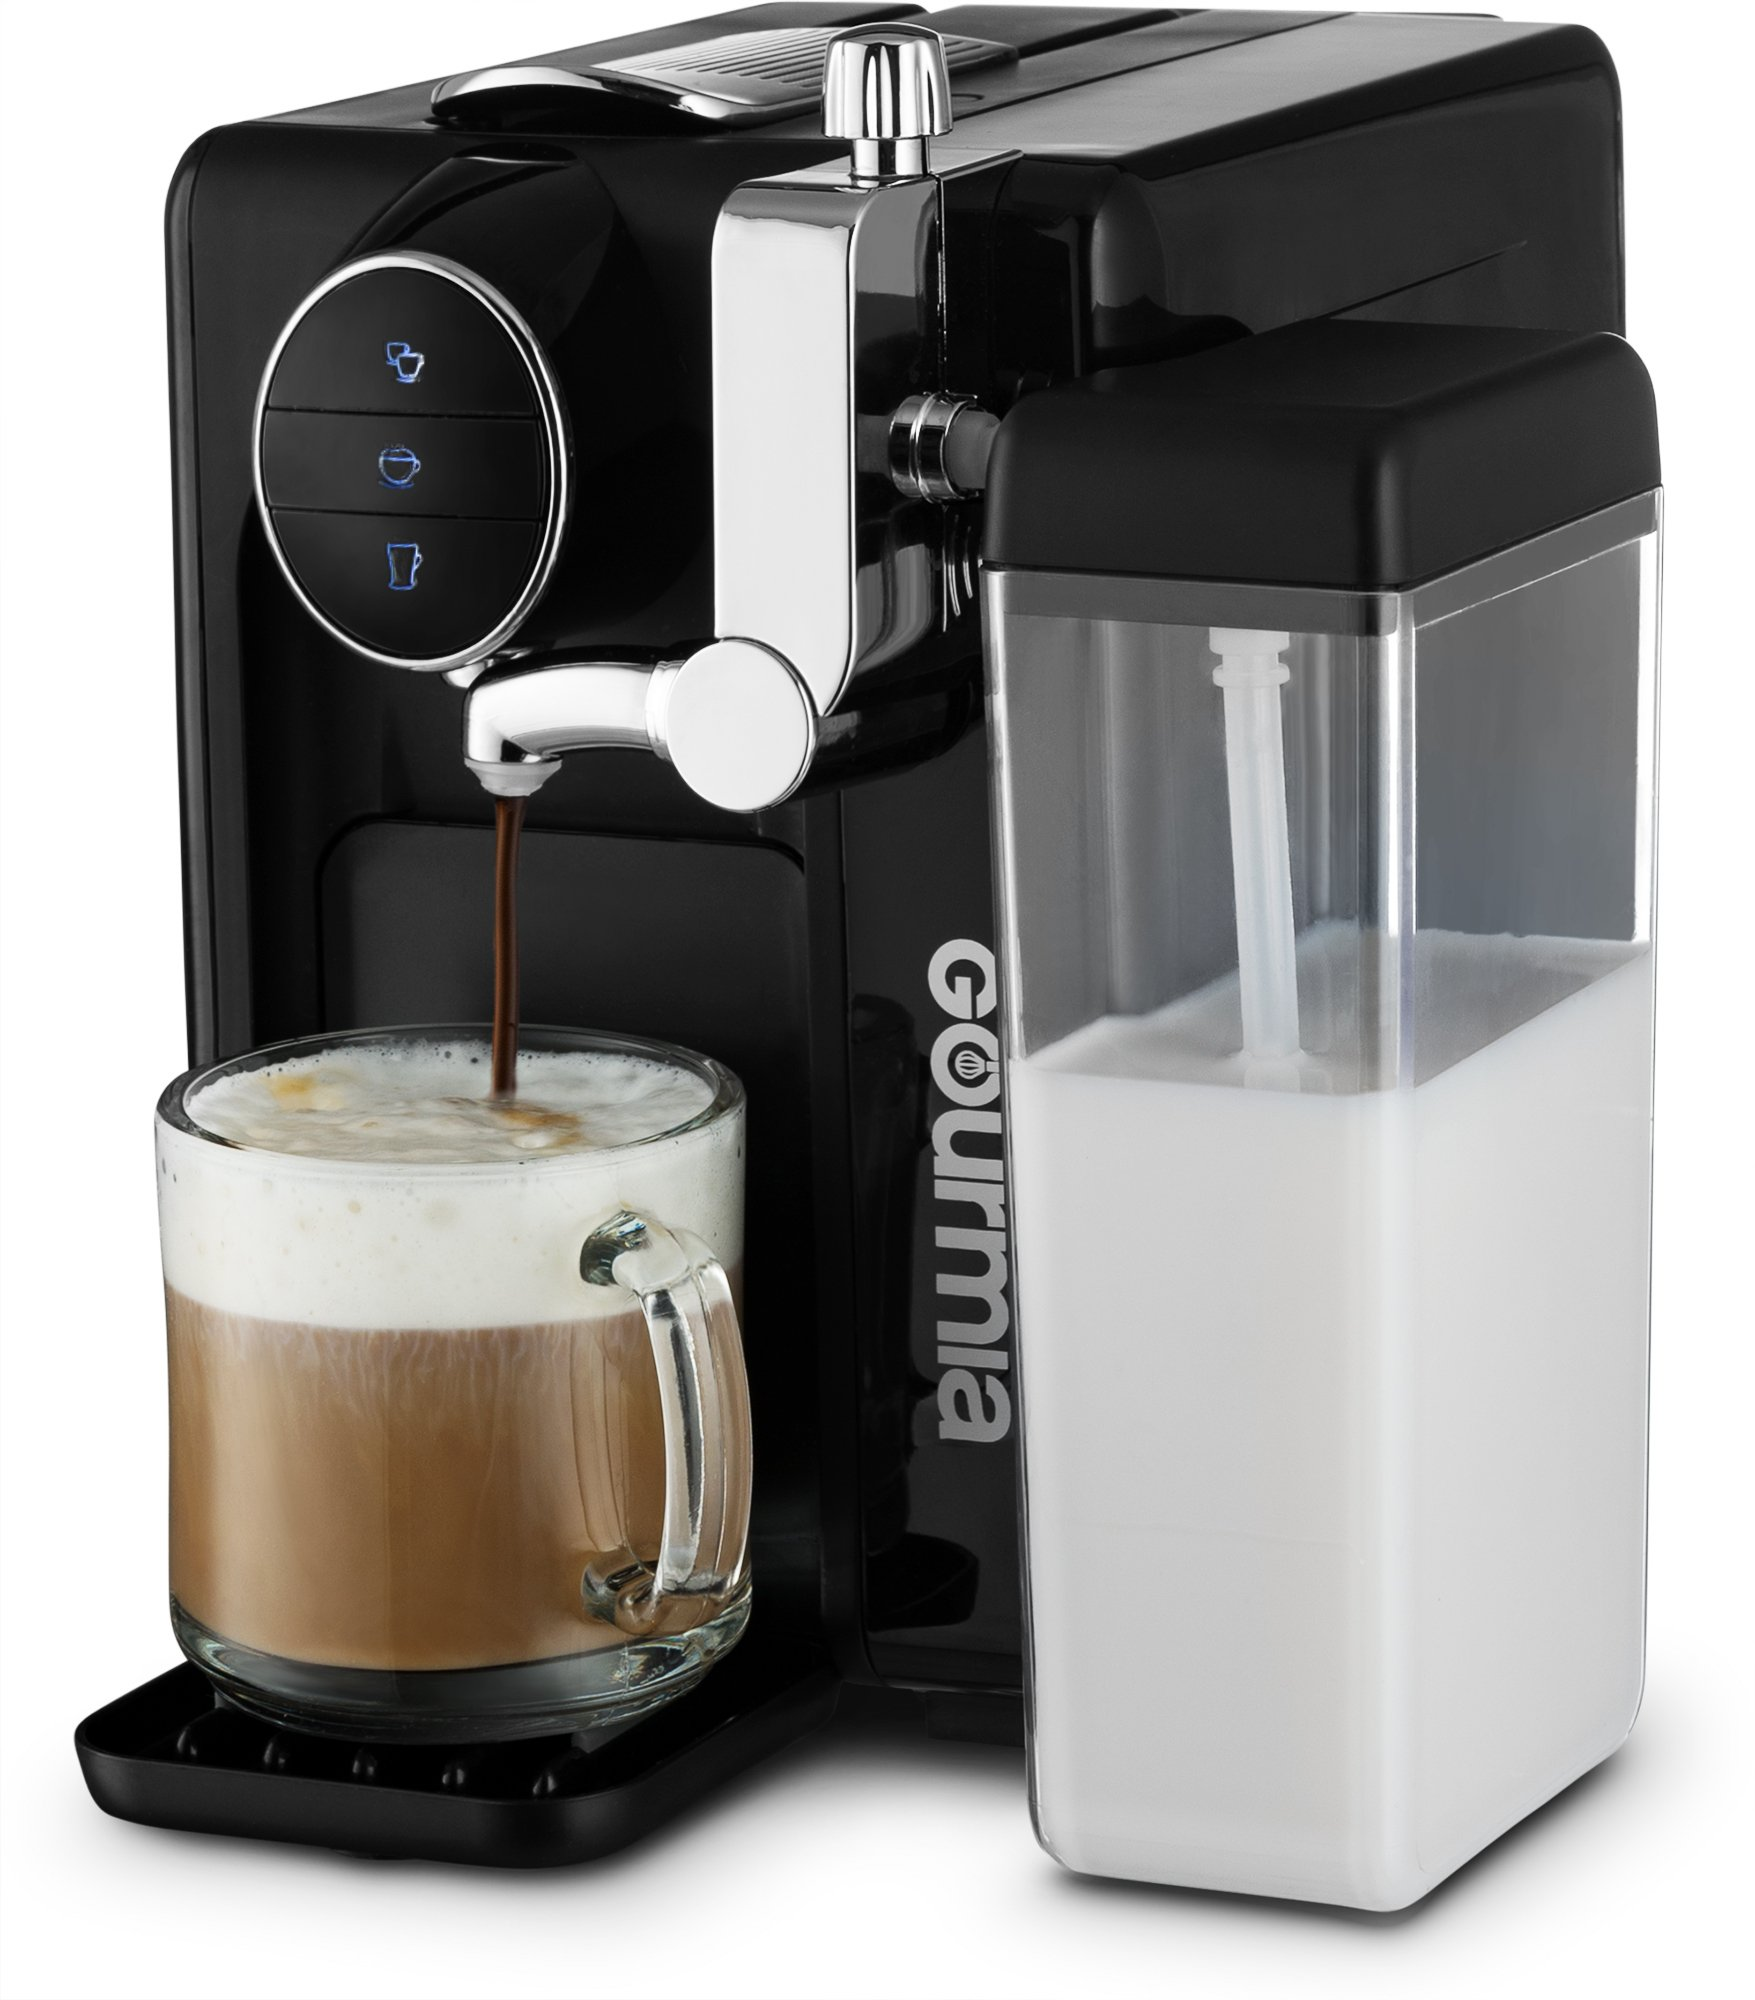 Gourmia GCM6500 One Touch Automatic Espresso Cappuccino & Latte Maker Italian engineered and components Coffee Machine Froth Milk In Cup with the Push of One Button Nespresso Compatible